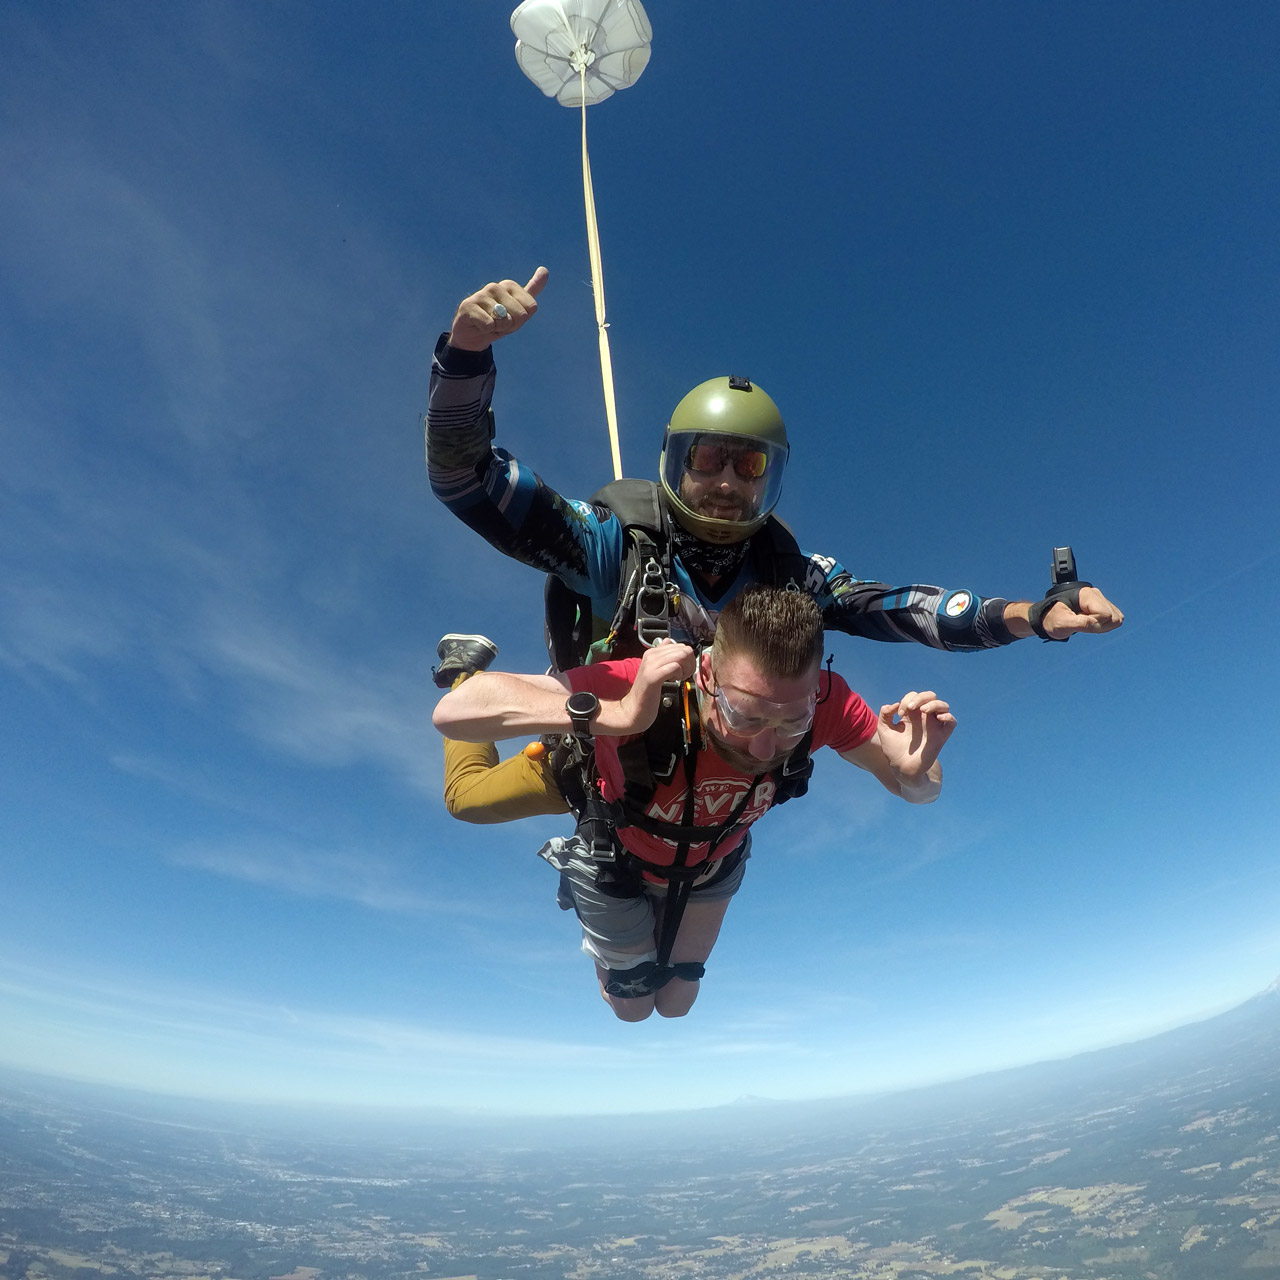 Male tandem skydiving student with a disability skydiving at PNW Skydiving Center near Portland, OR